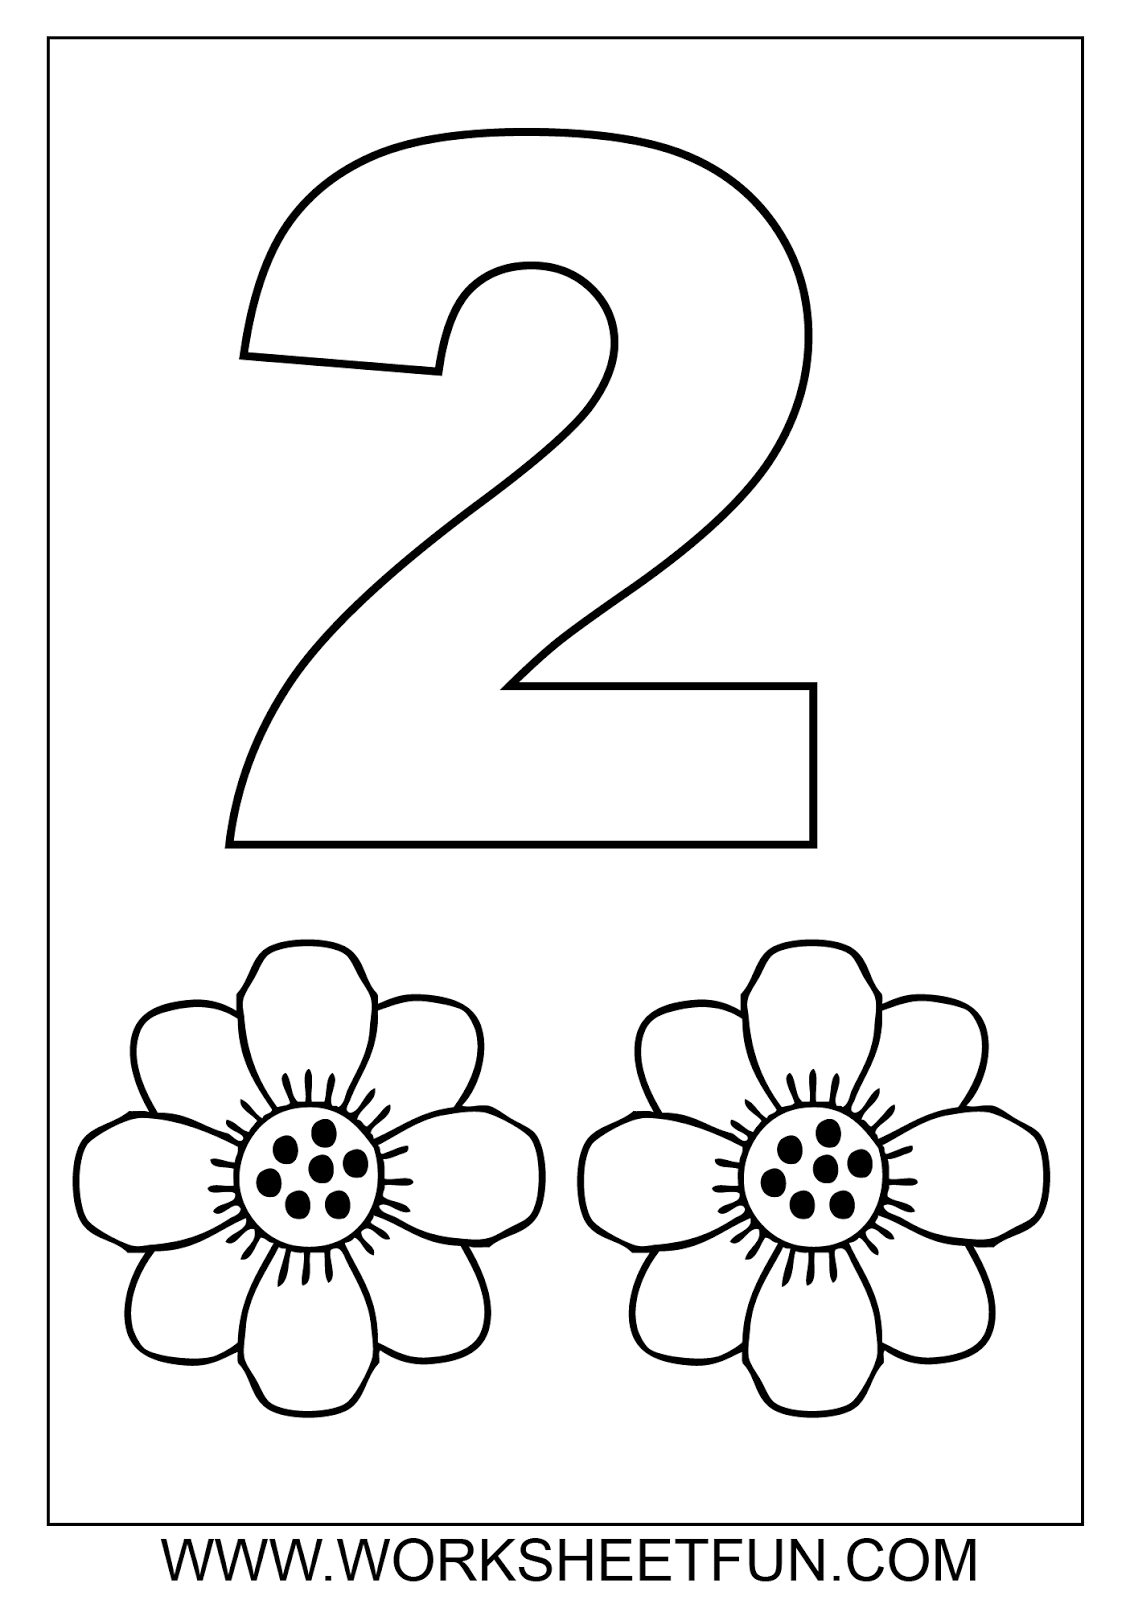 Number 2 Preschool Coloring Worksheets Coloring Pages Number Two Coloring Page